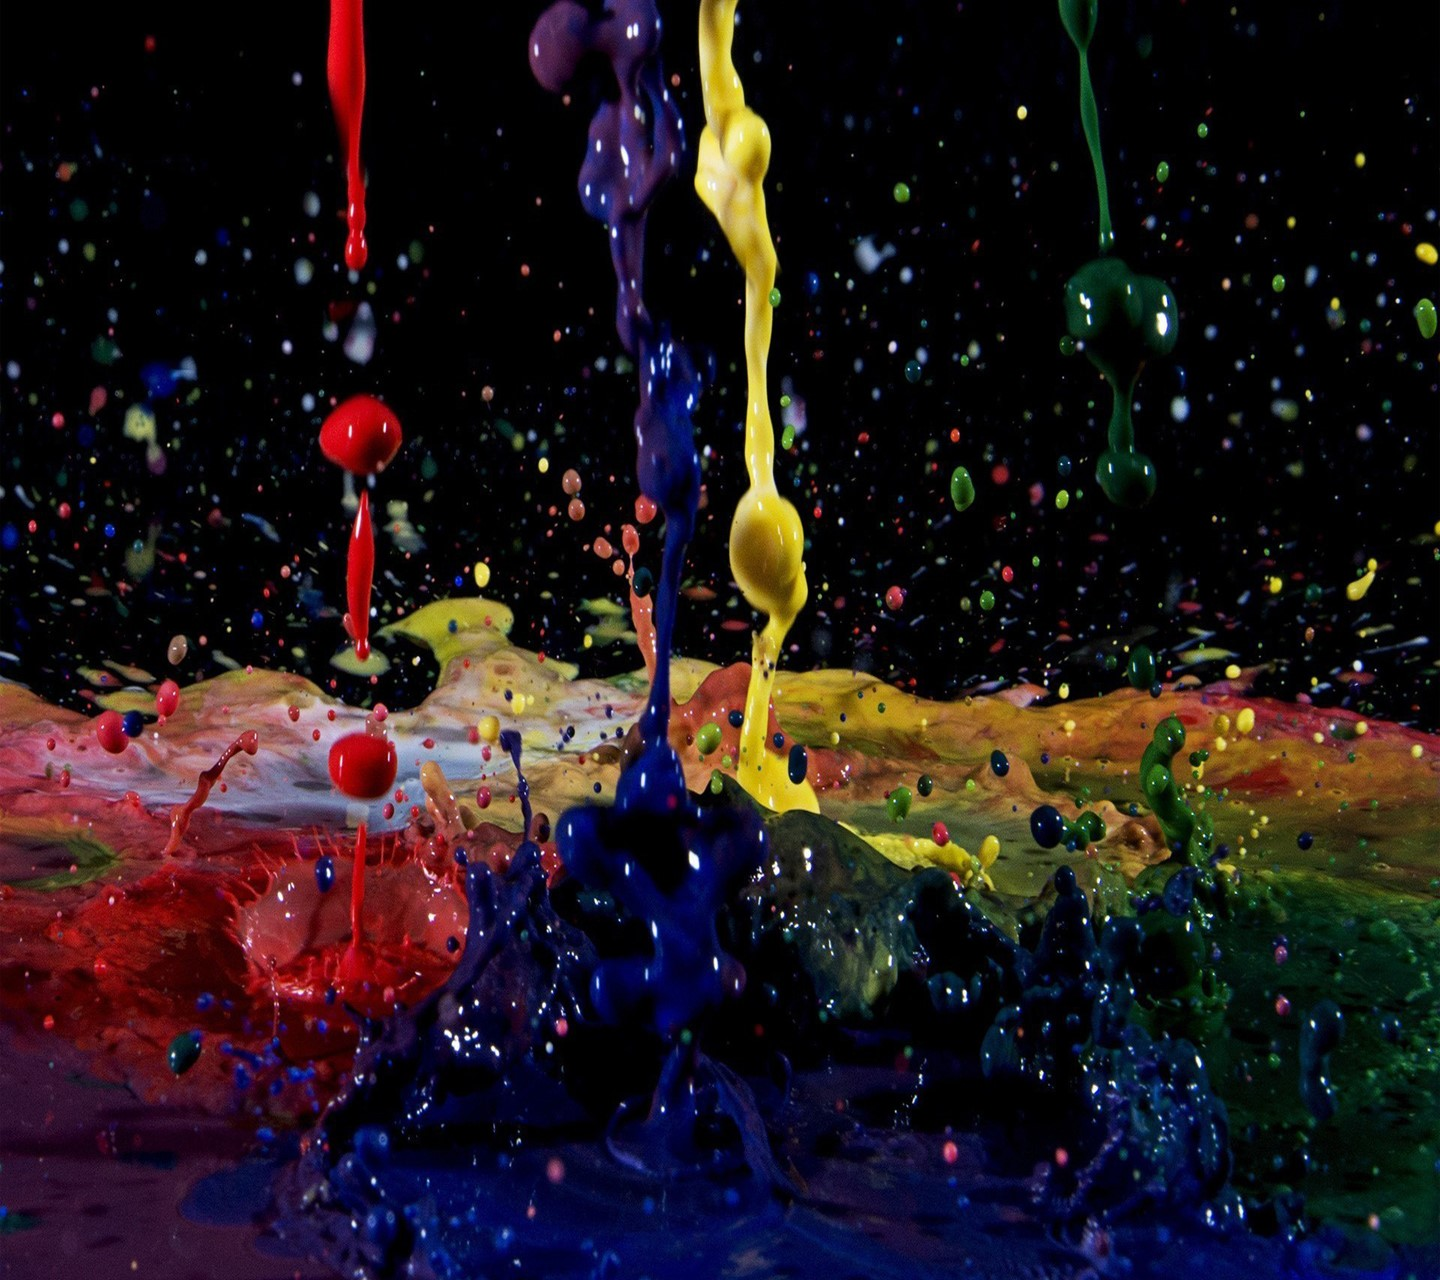 paint splashes wallpaper 10072500